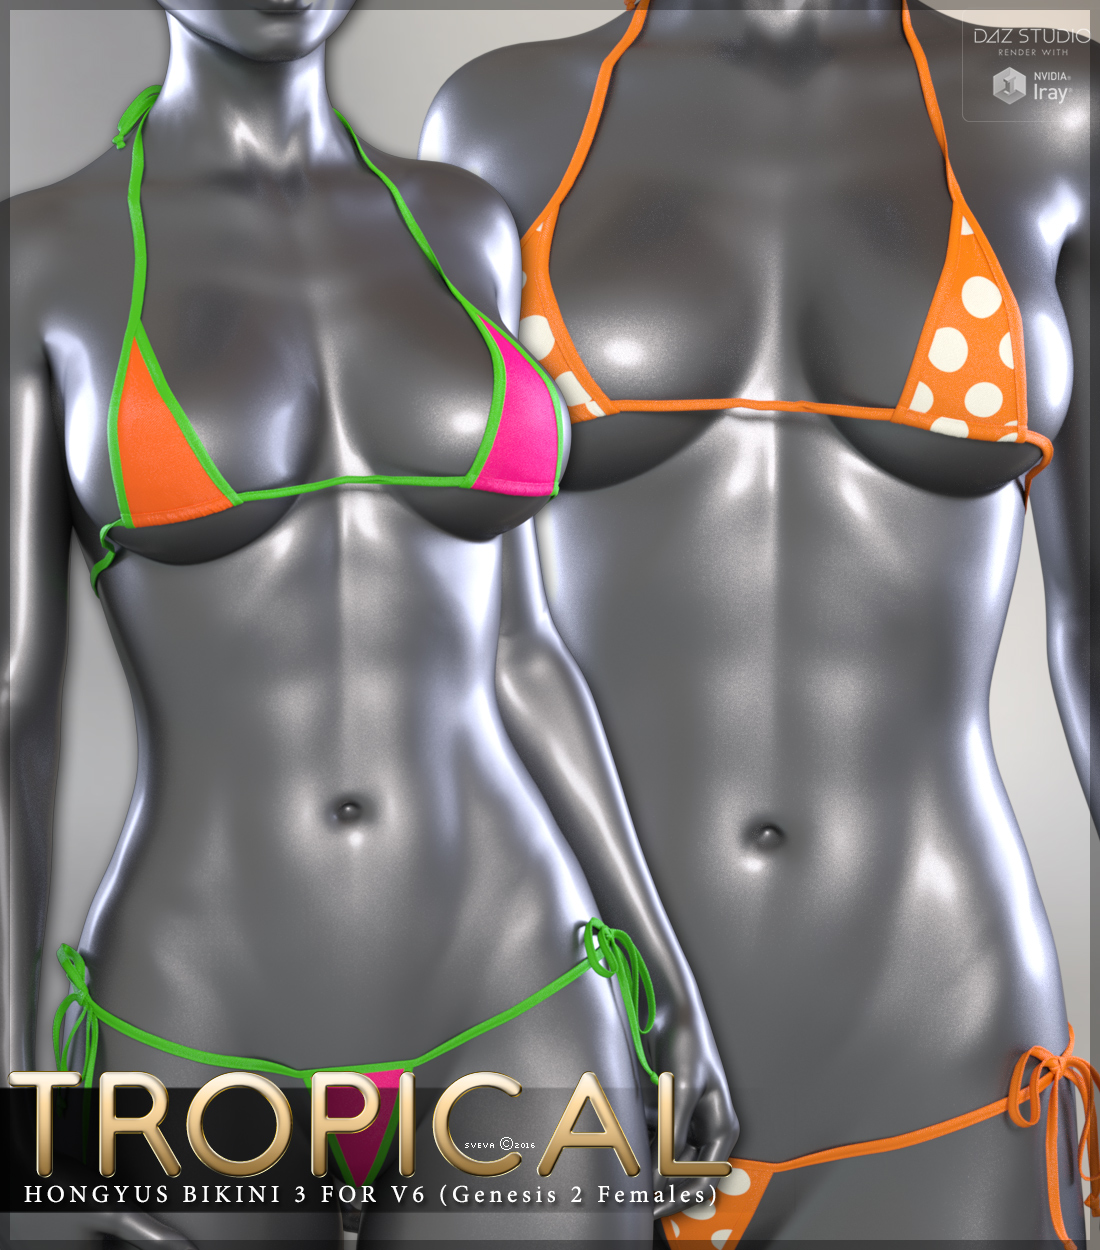 Tropical for Bikini 3 V6